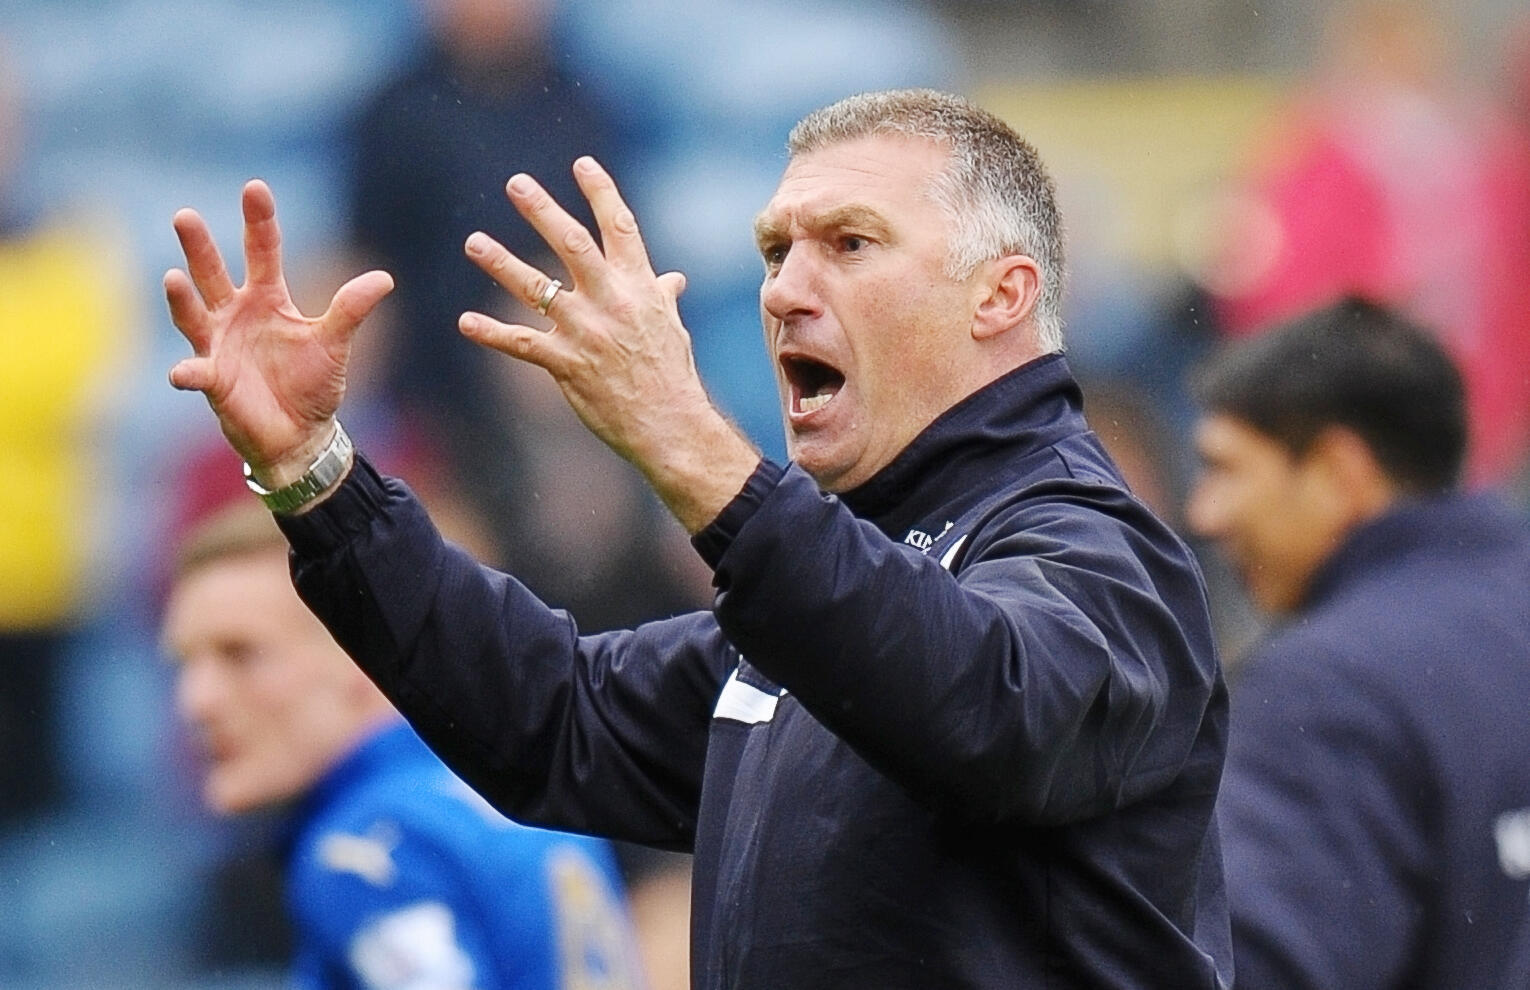 Leicester City coach Nigel Pearson has led his team to five wins in six Premier League matches